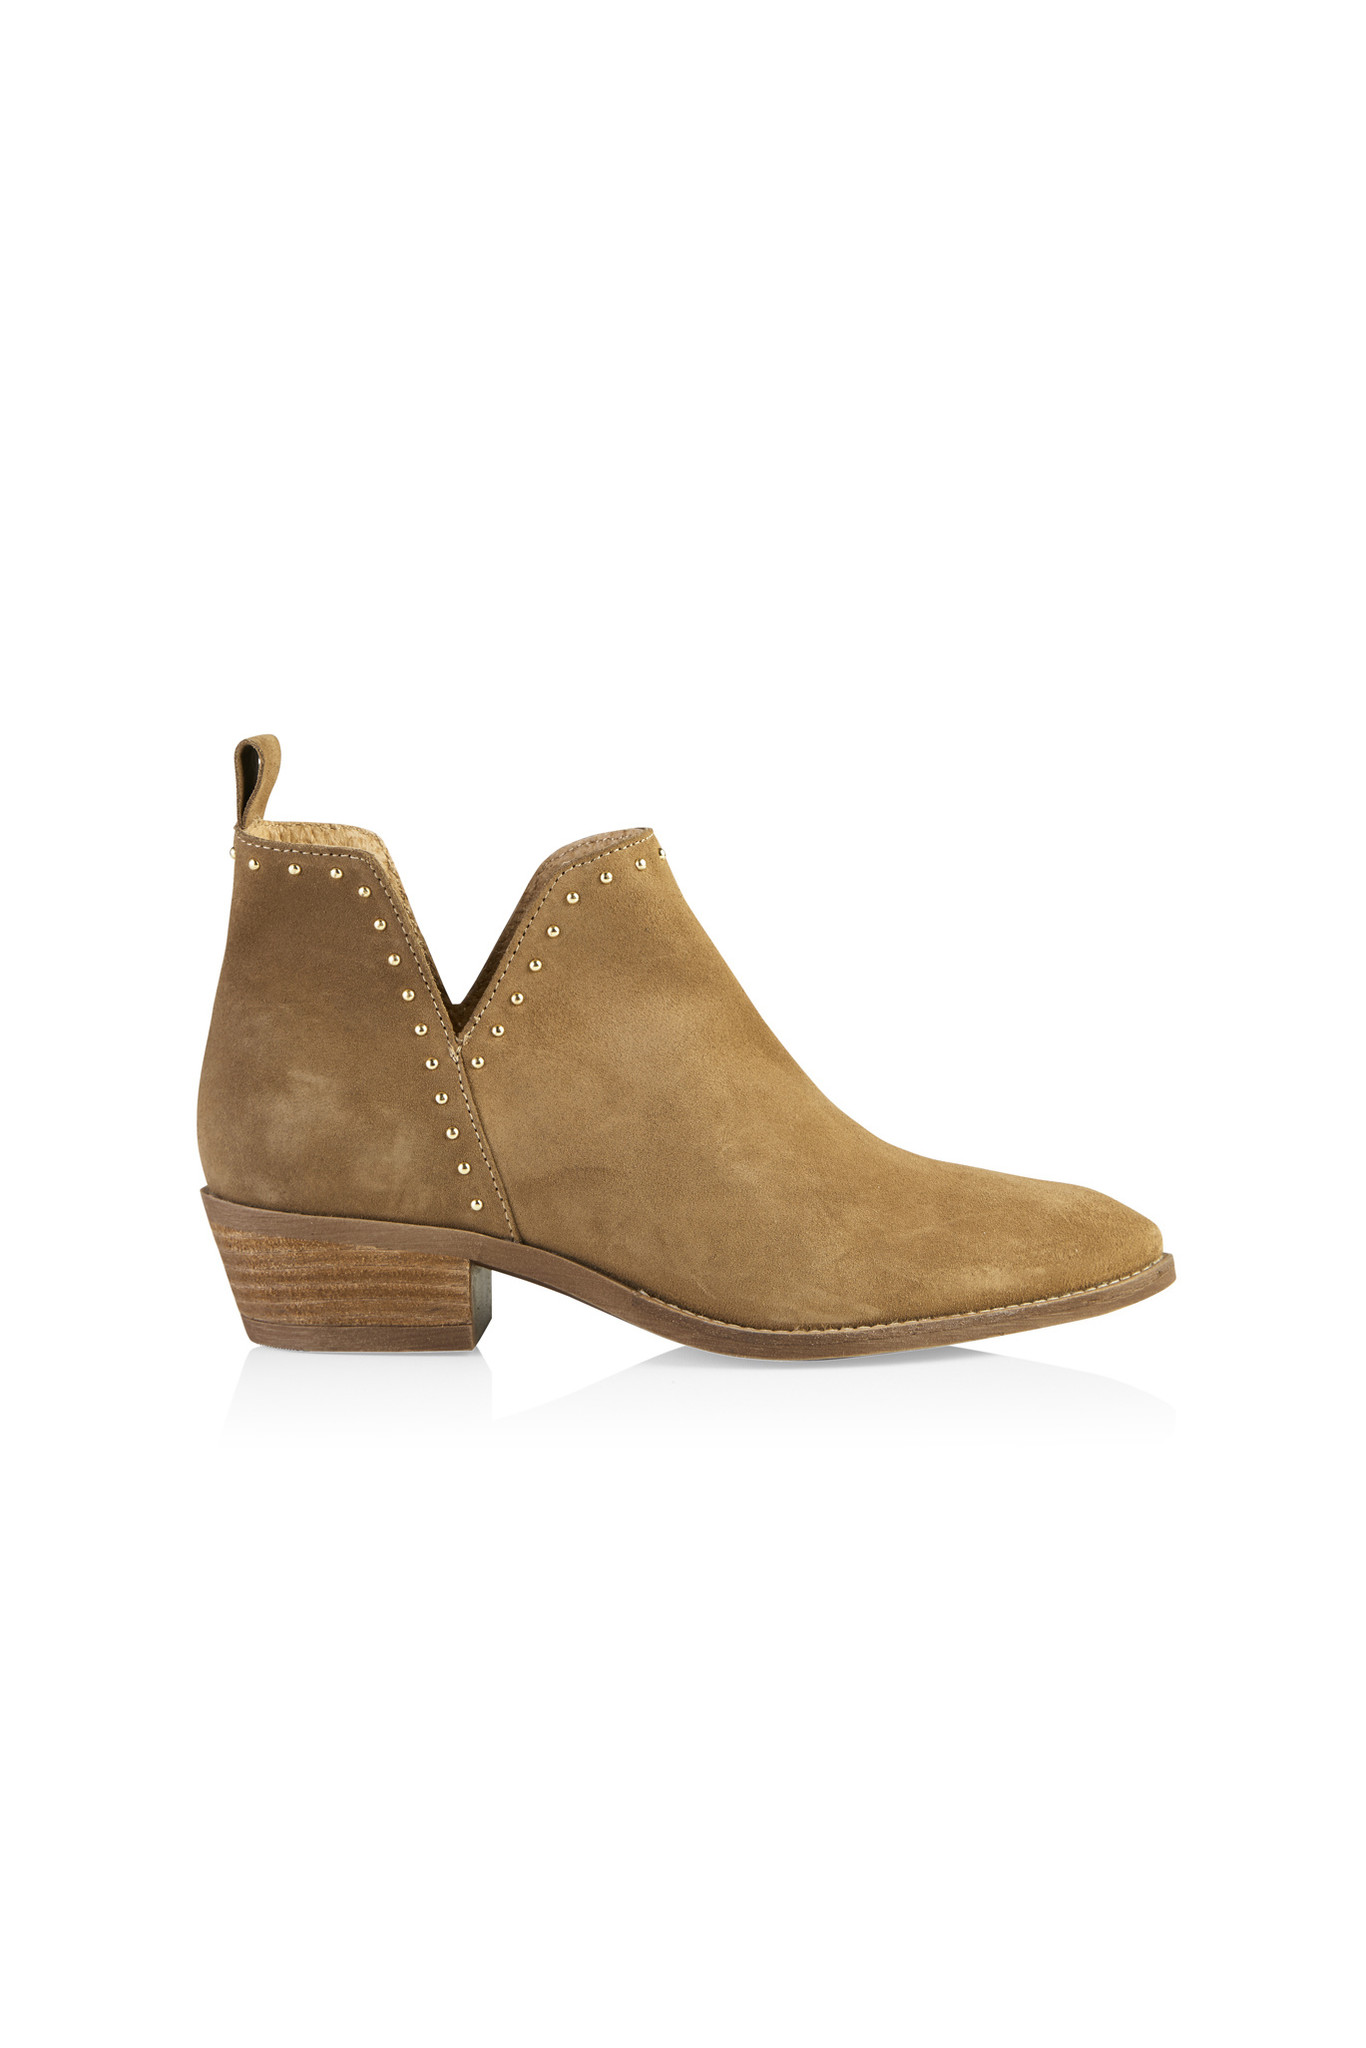 Gianna Boot - Taupe/Gold-1